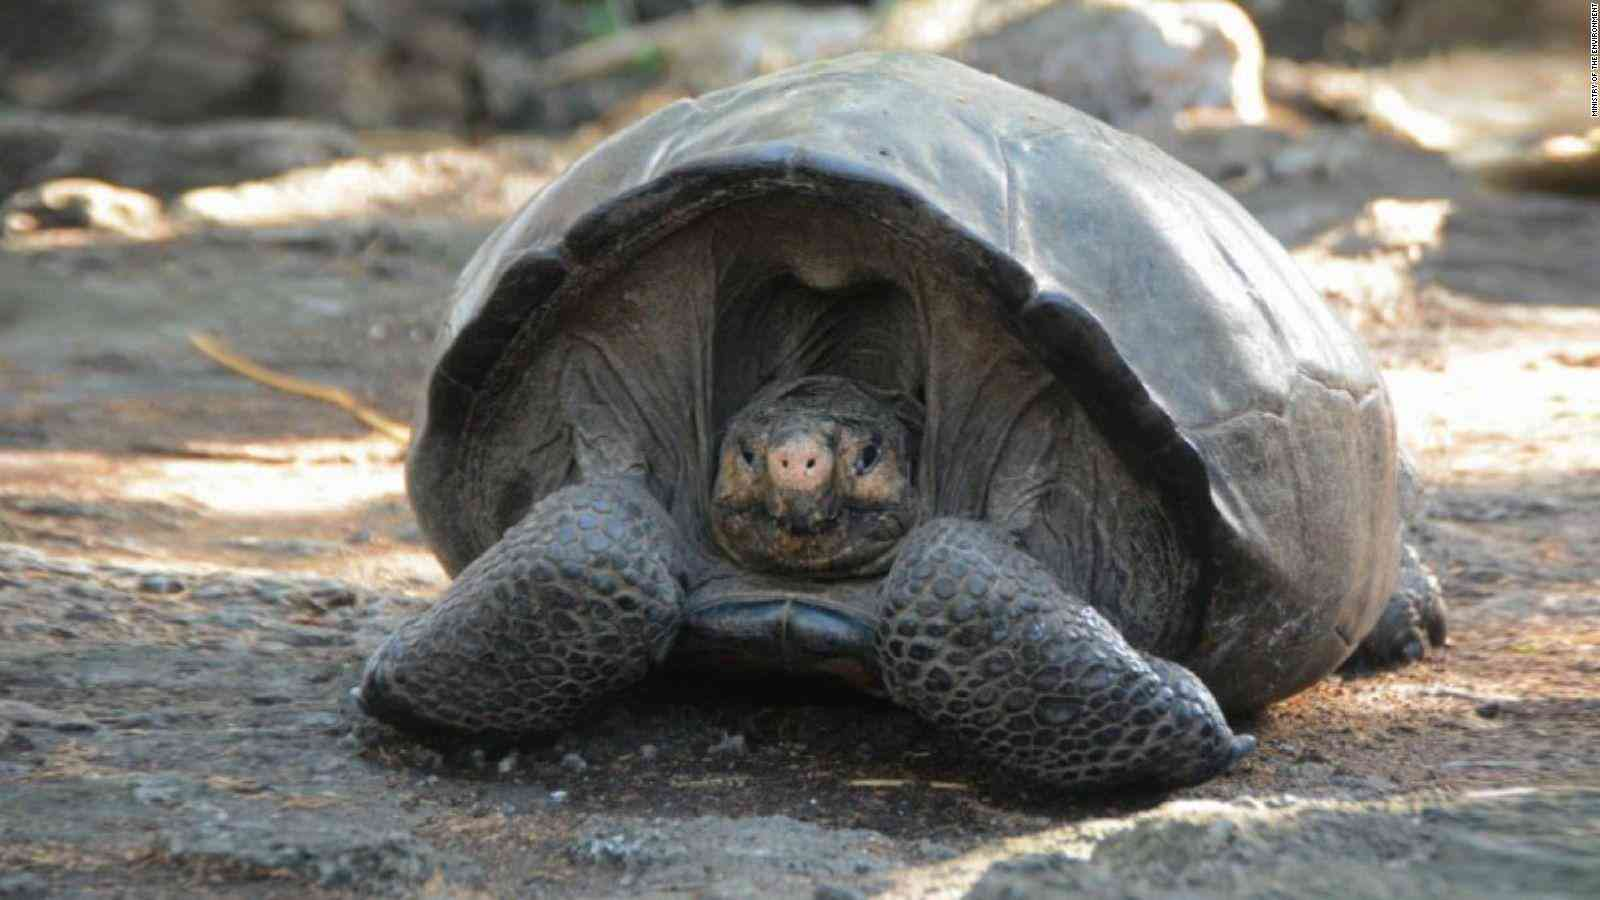 A living specimen of the Fernandina Island Galápagos tortoise had not been seen since 1906. Photo via Twitter